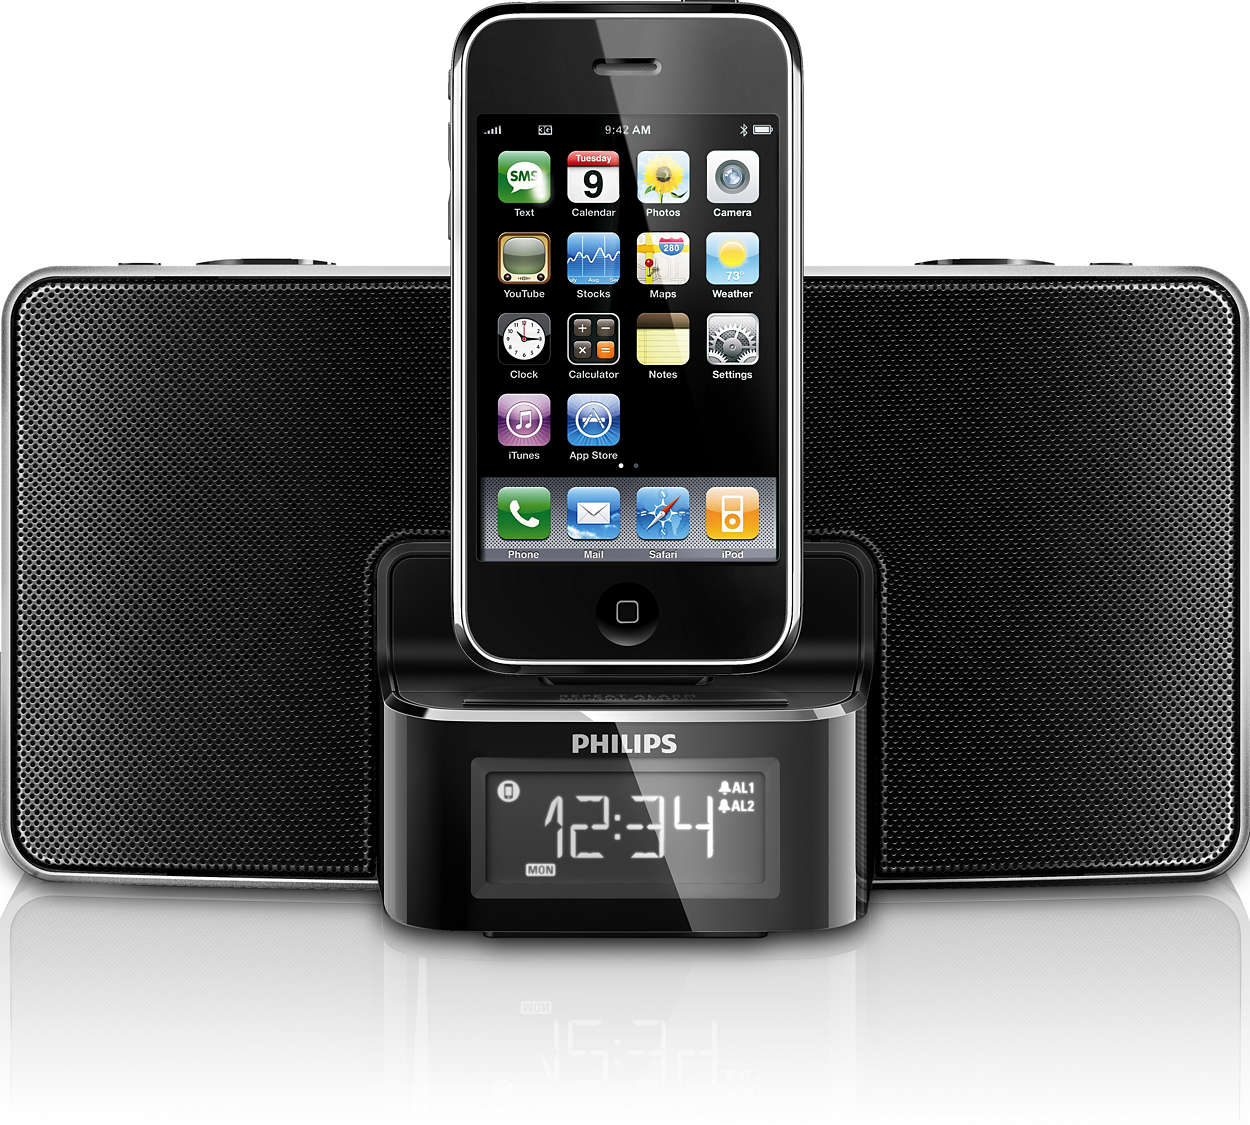 alarm clock radio for ipod iphone dc220 12 philips. Black Bedroom Furniture Sets. Home Design Ideas